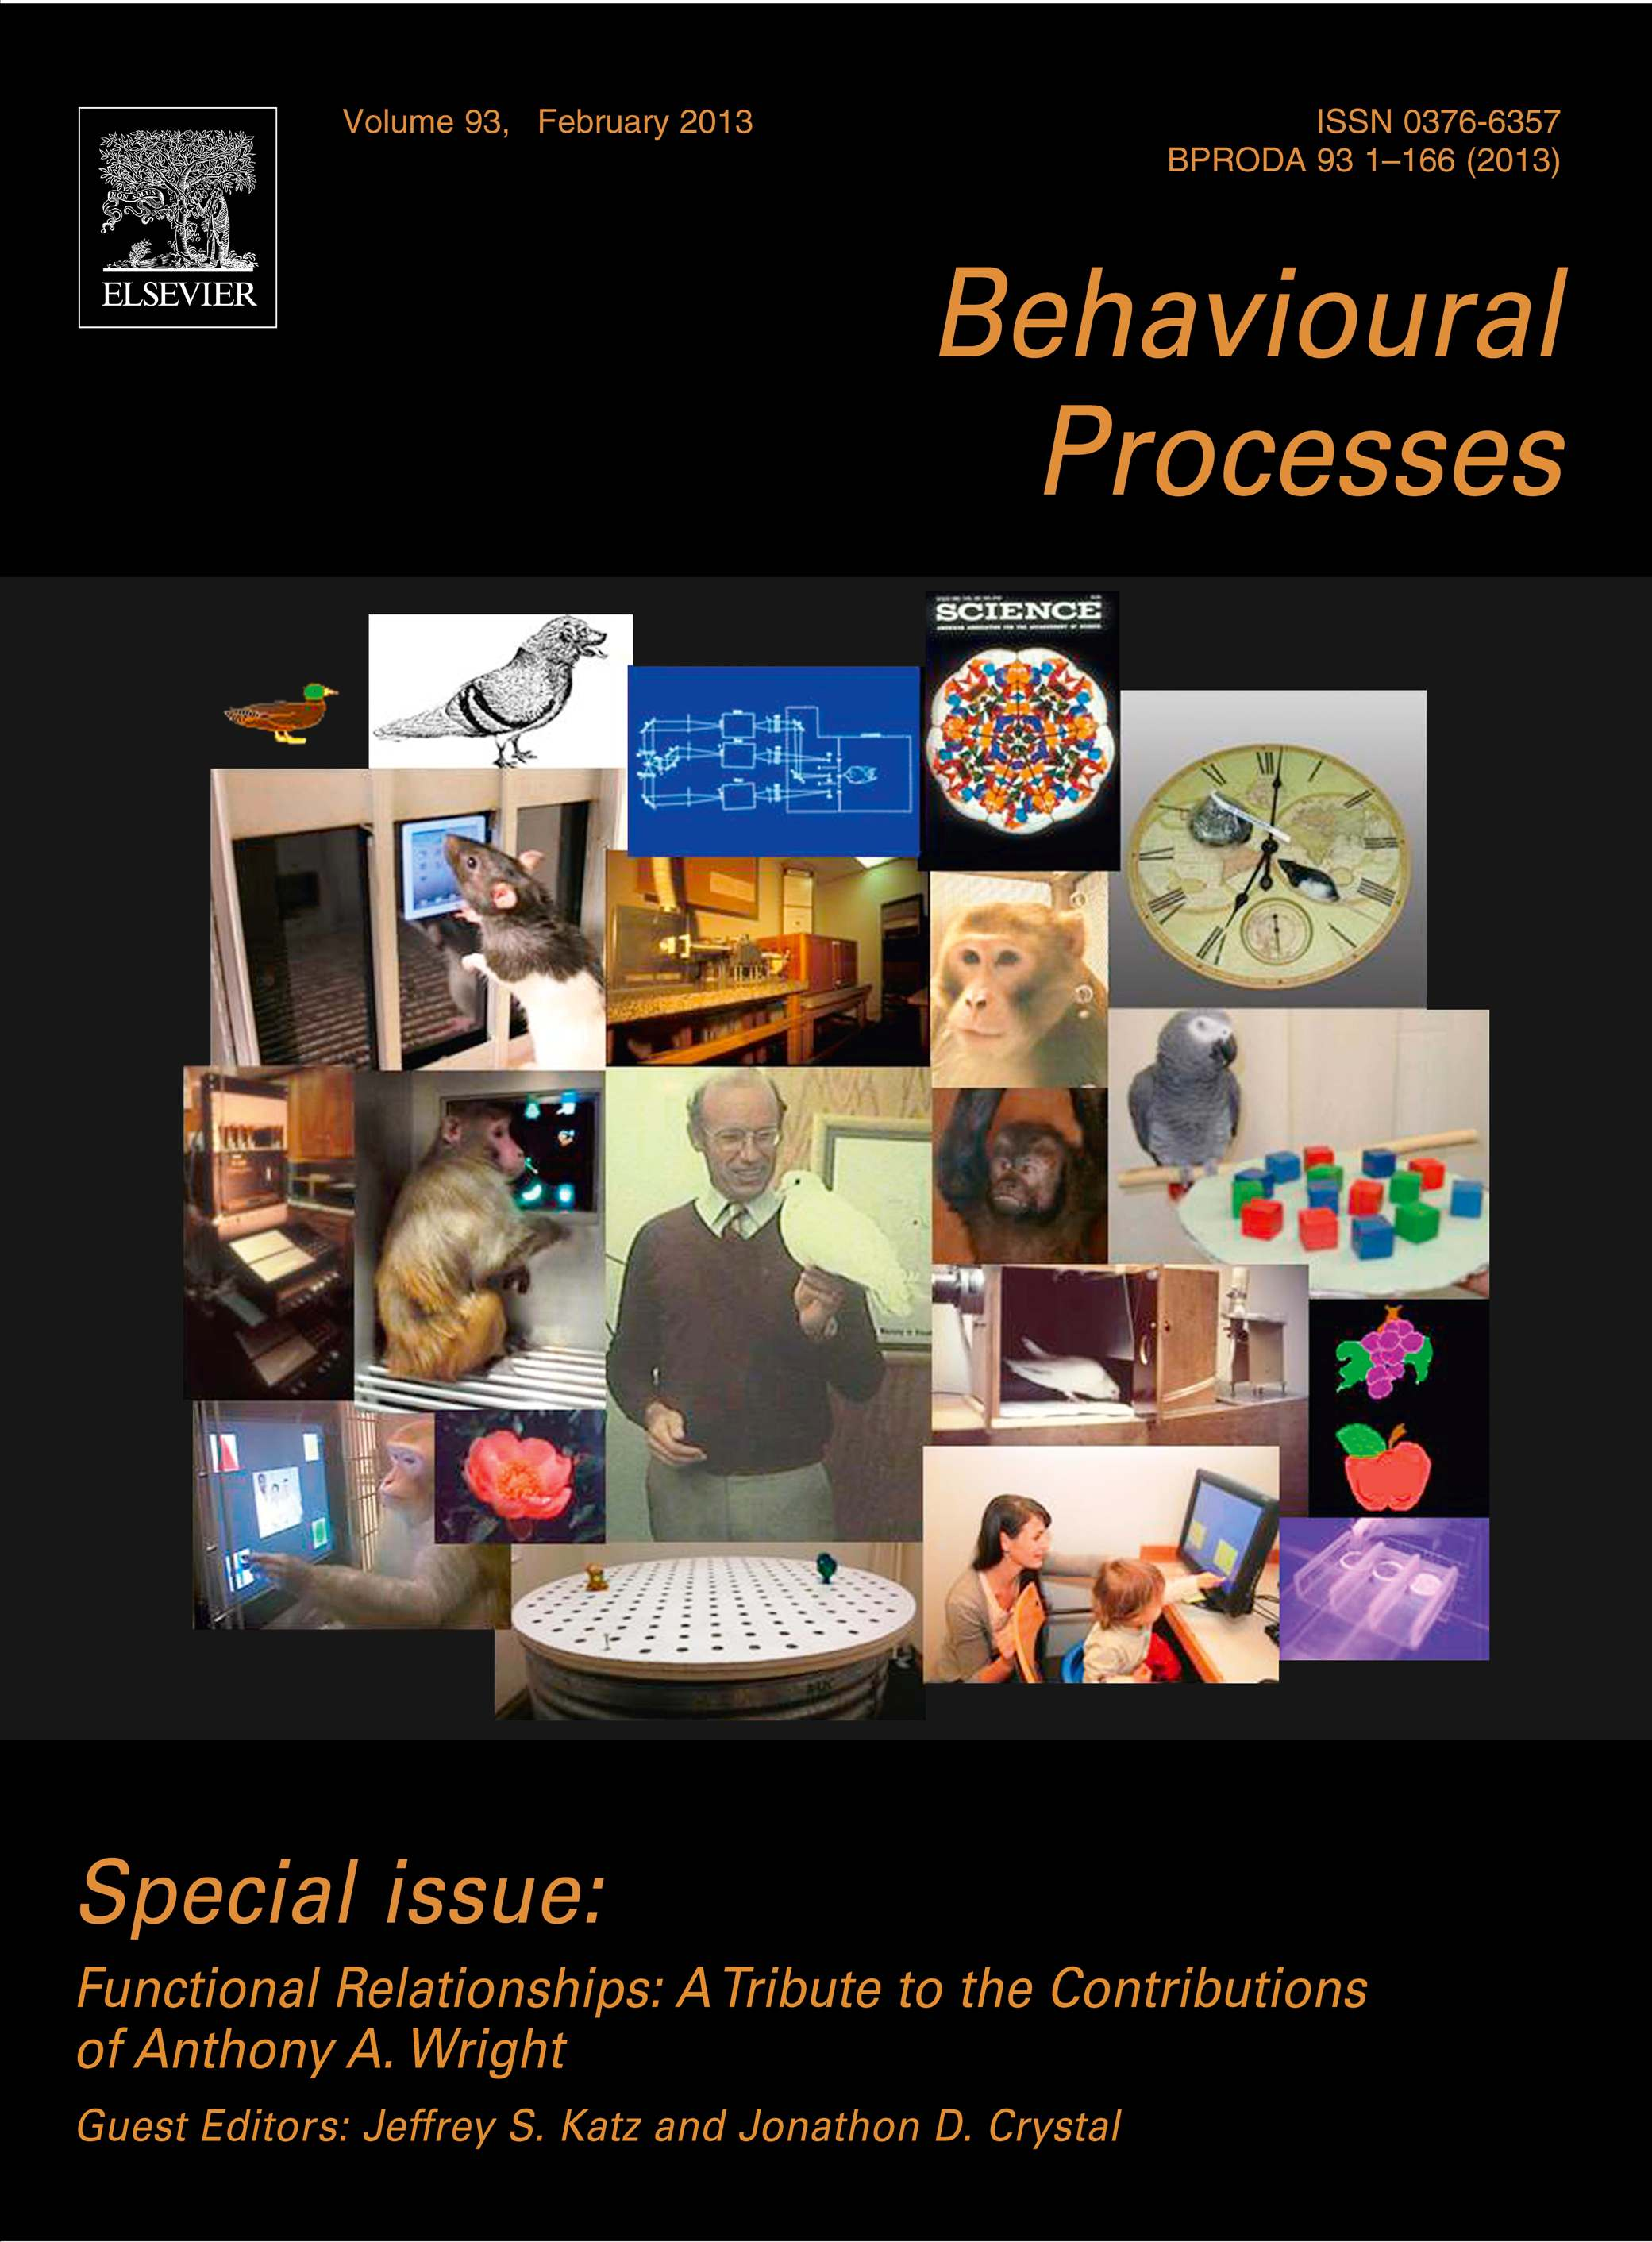 the physiology of behavior and the effects of the moon on personality Ocd symptoms and effects ocd symptoms and effects this leads to a vicious cycle of ritualistic behavior that is characteristic of obsessive-compulsive disorder signs, symptoms, and effects borderline personality disorder signs, symptoms, and effects ocd (obsessive compulsive disorder.